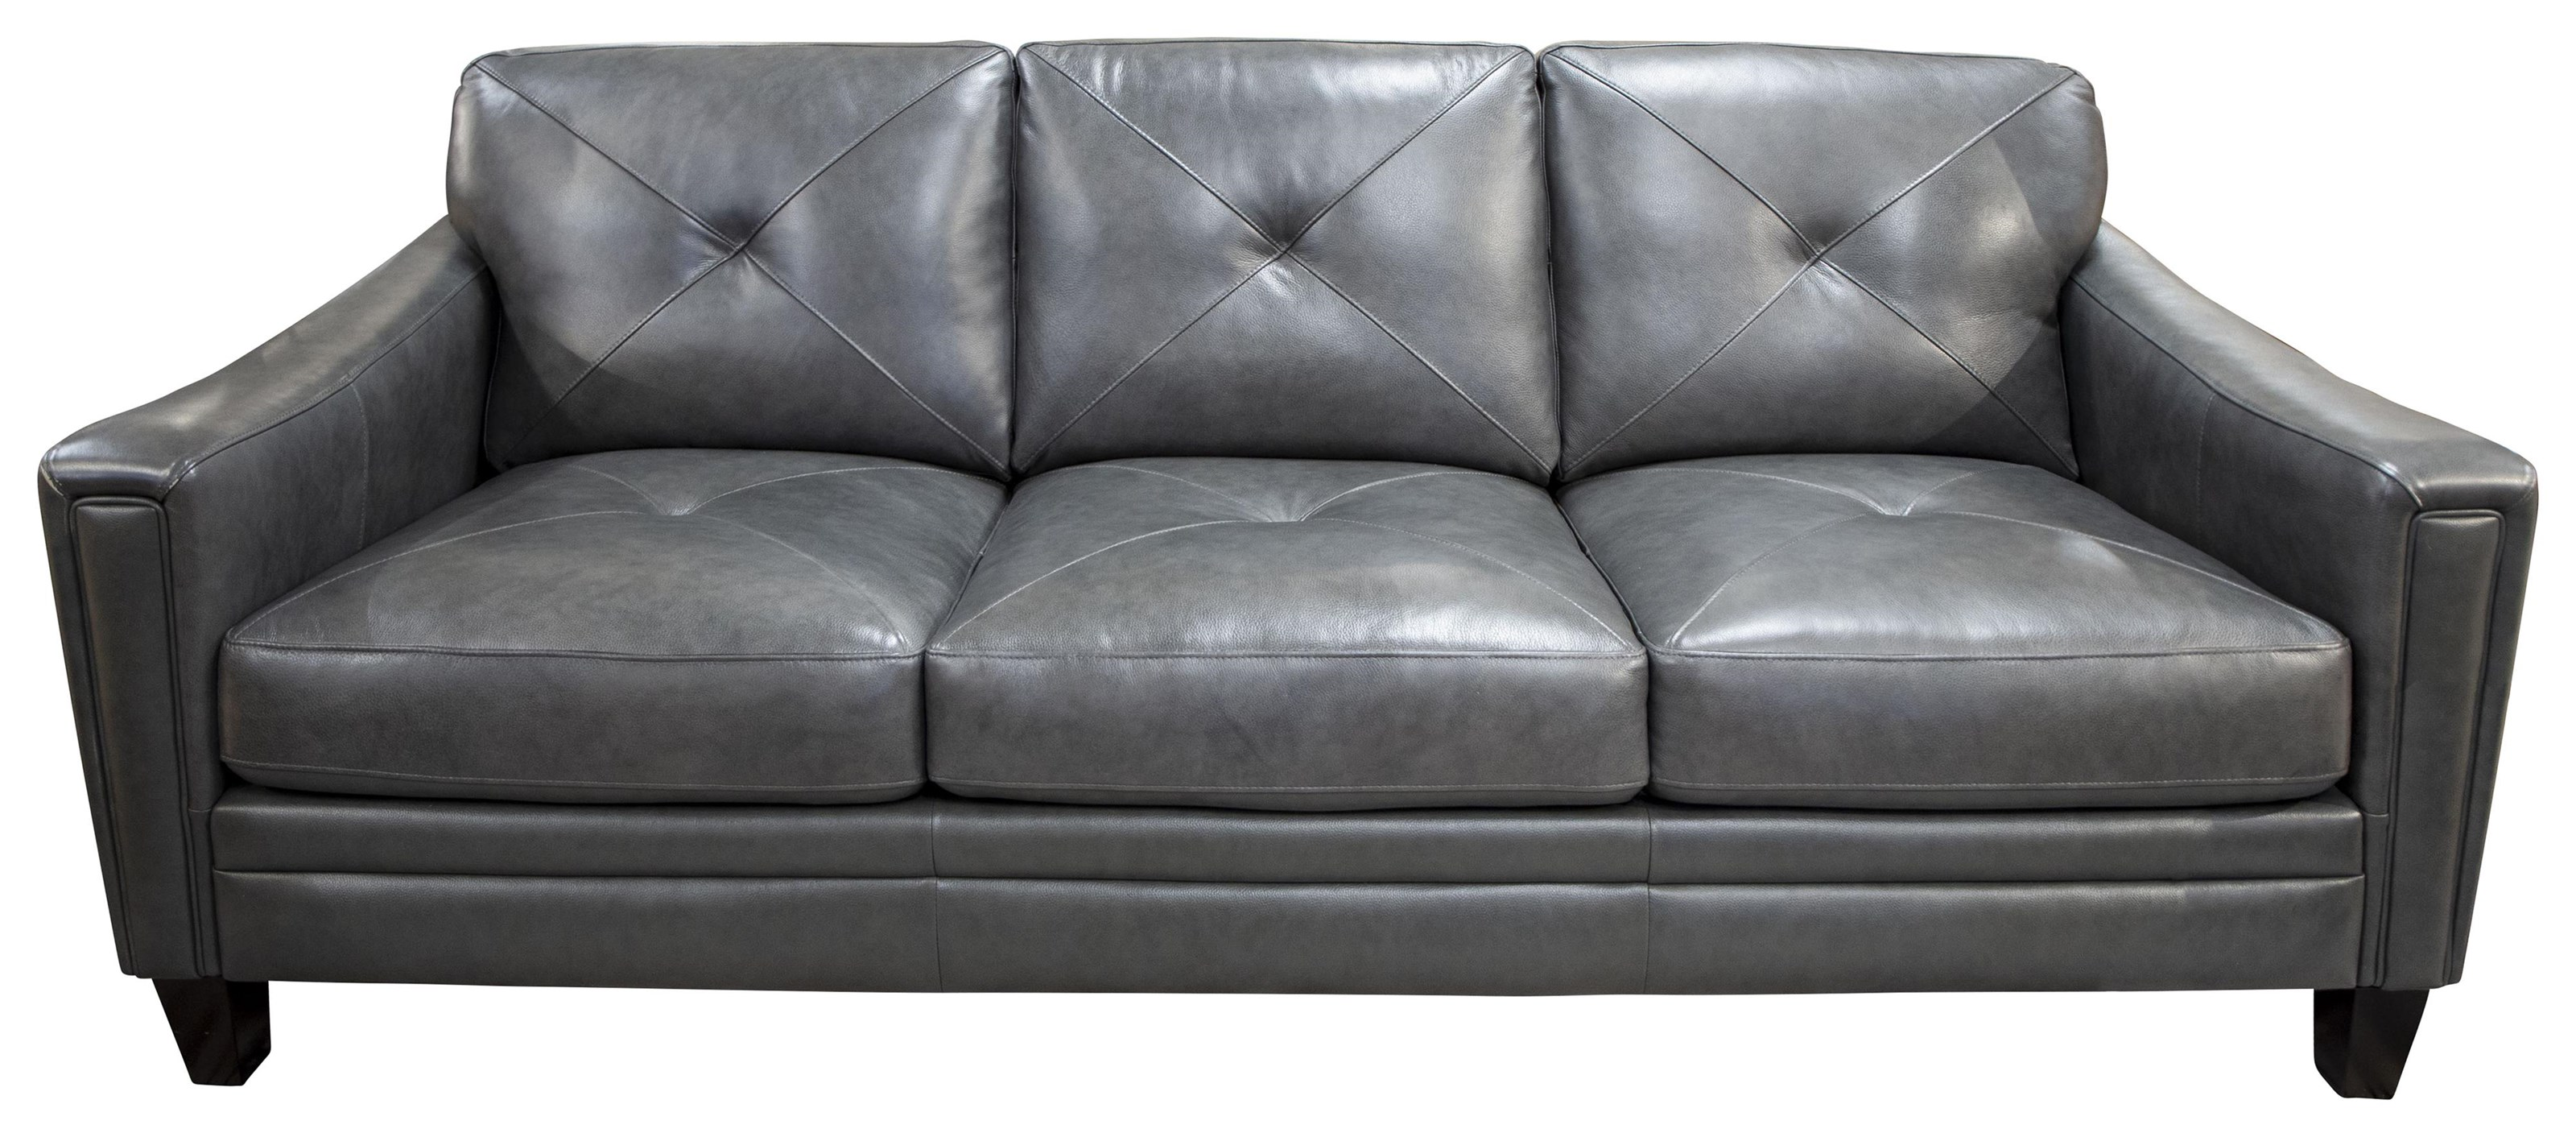 Wren Wren Leather Match Sofa by Abbyson at Morris Home